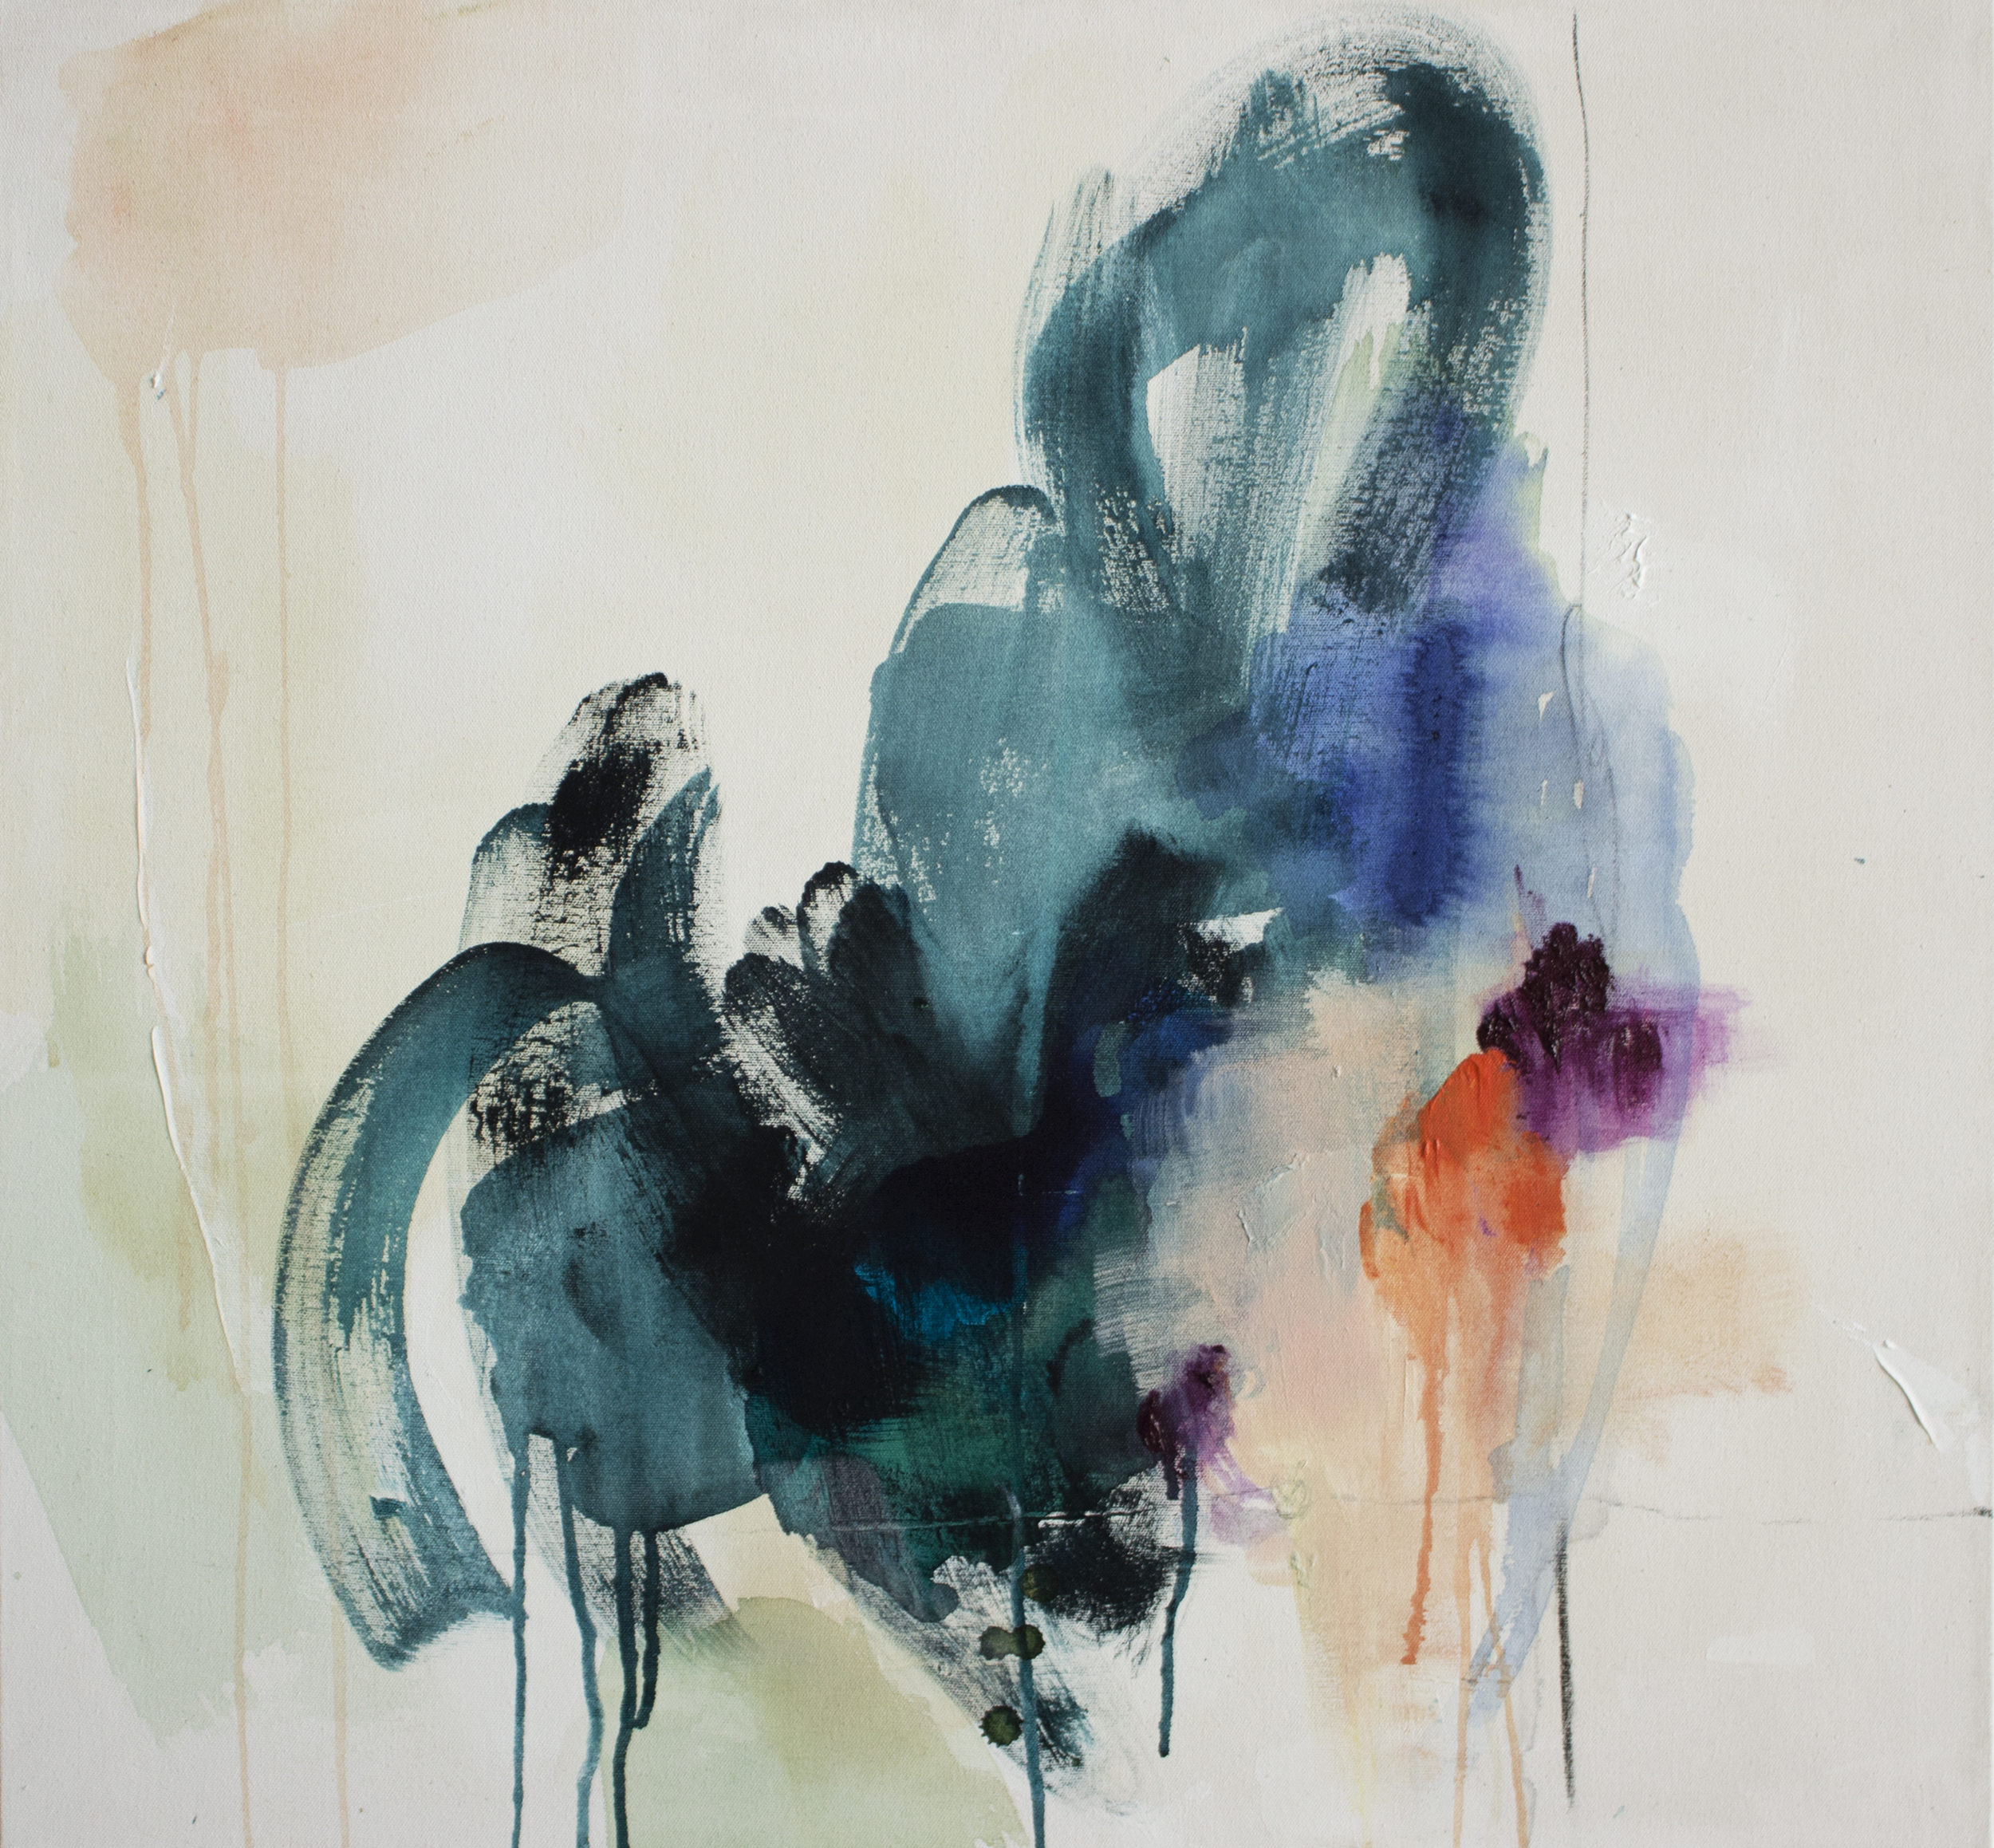 Tandem 27 in. x 29 in. acrylic, charcoal on canvas